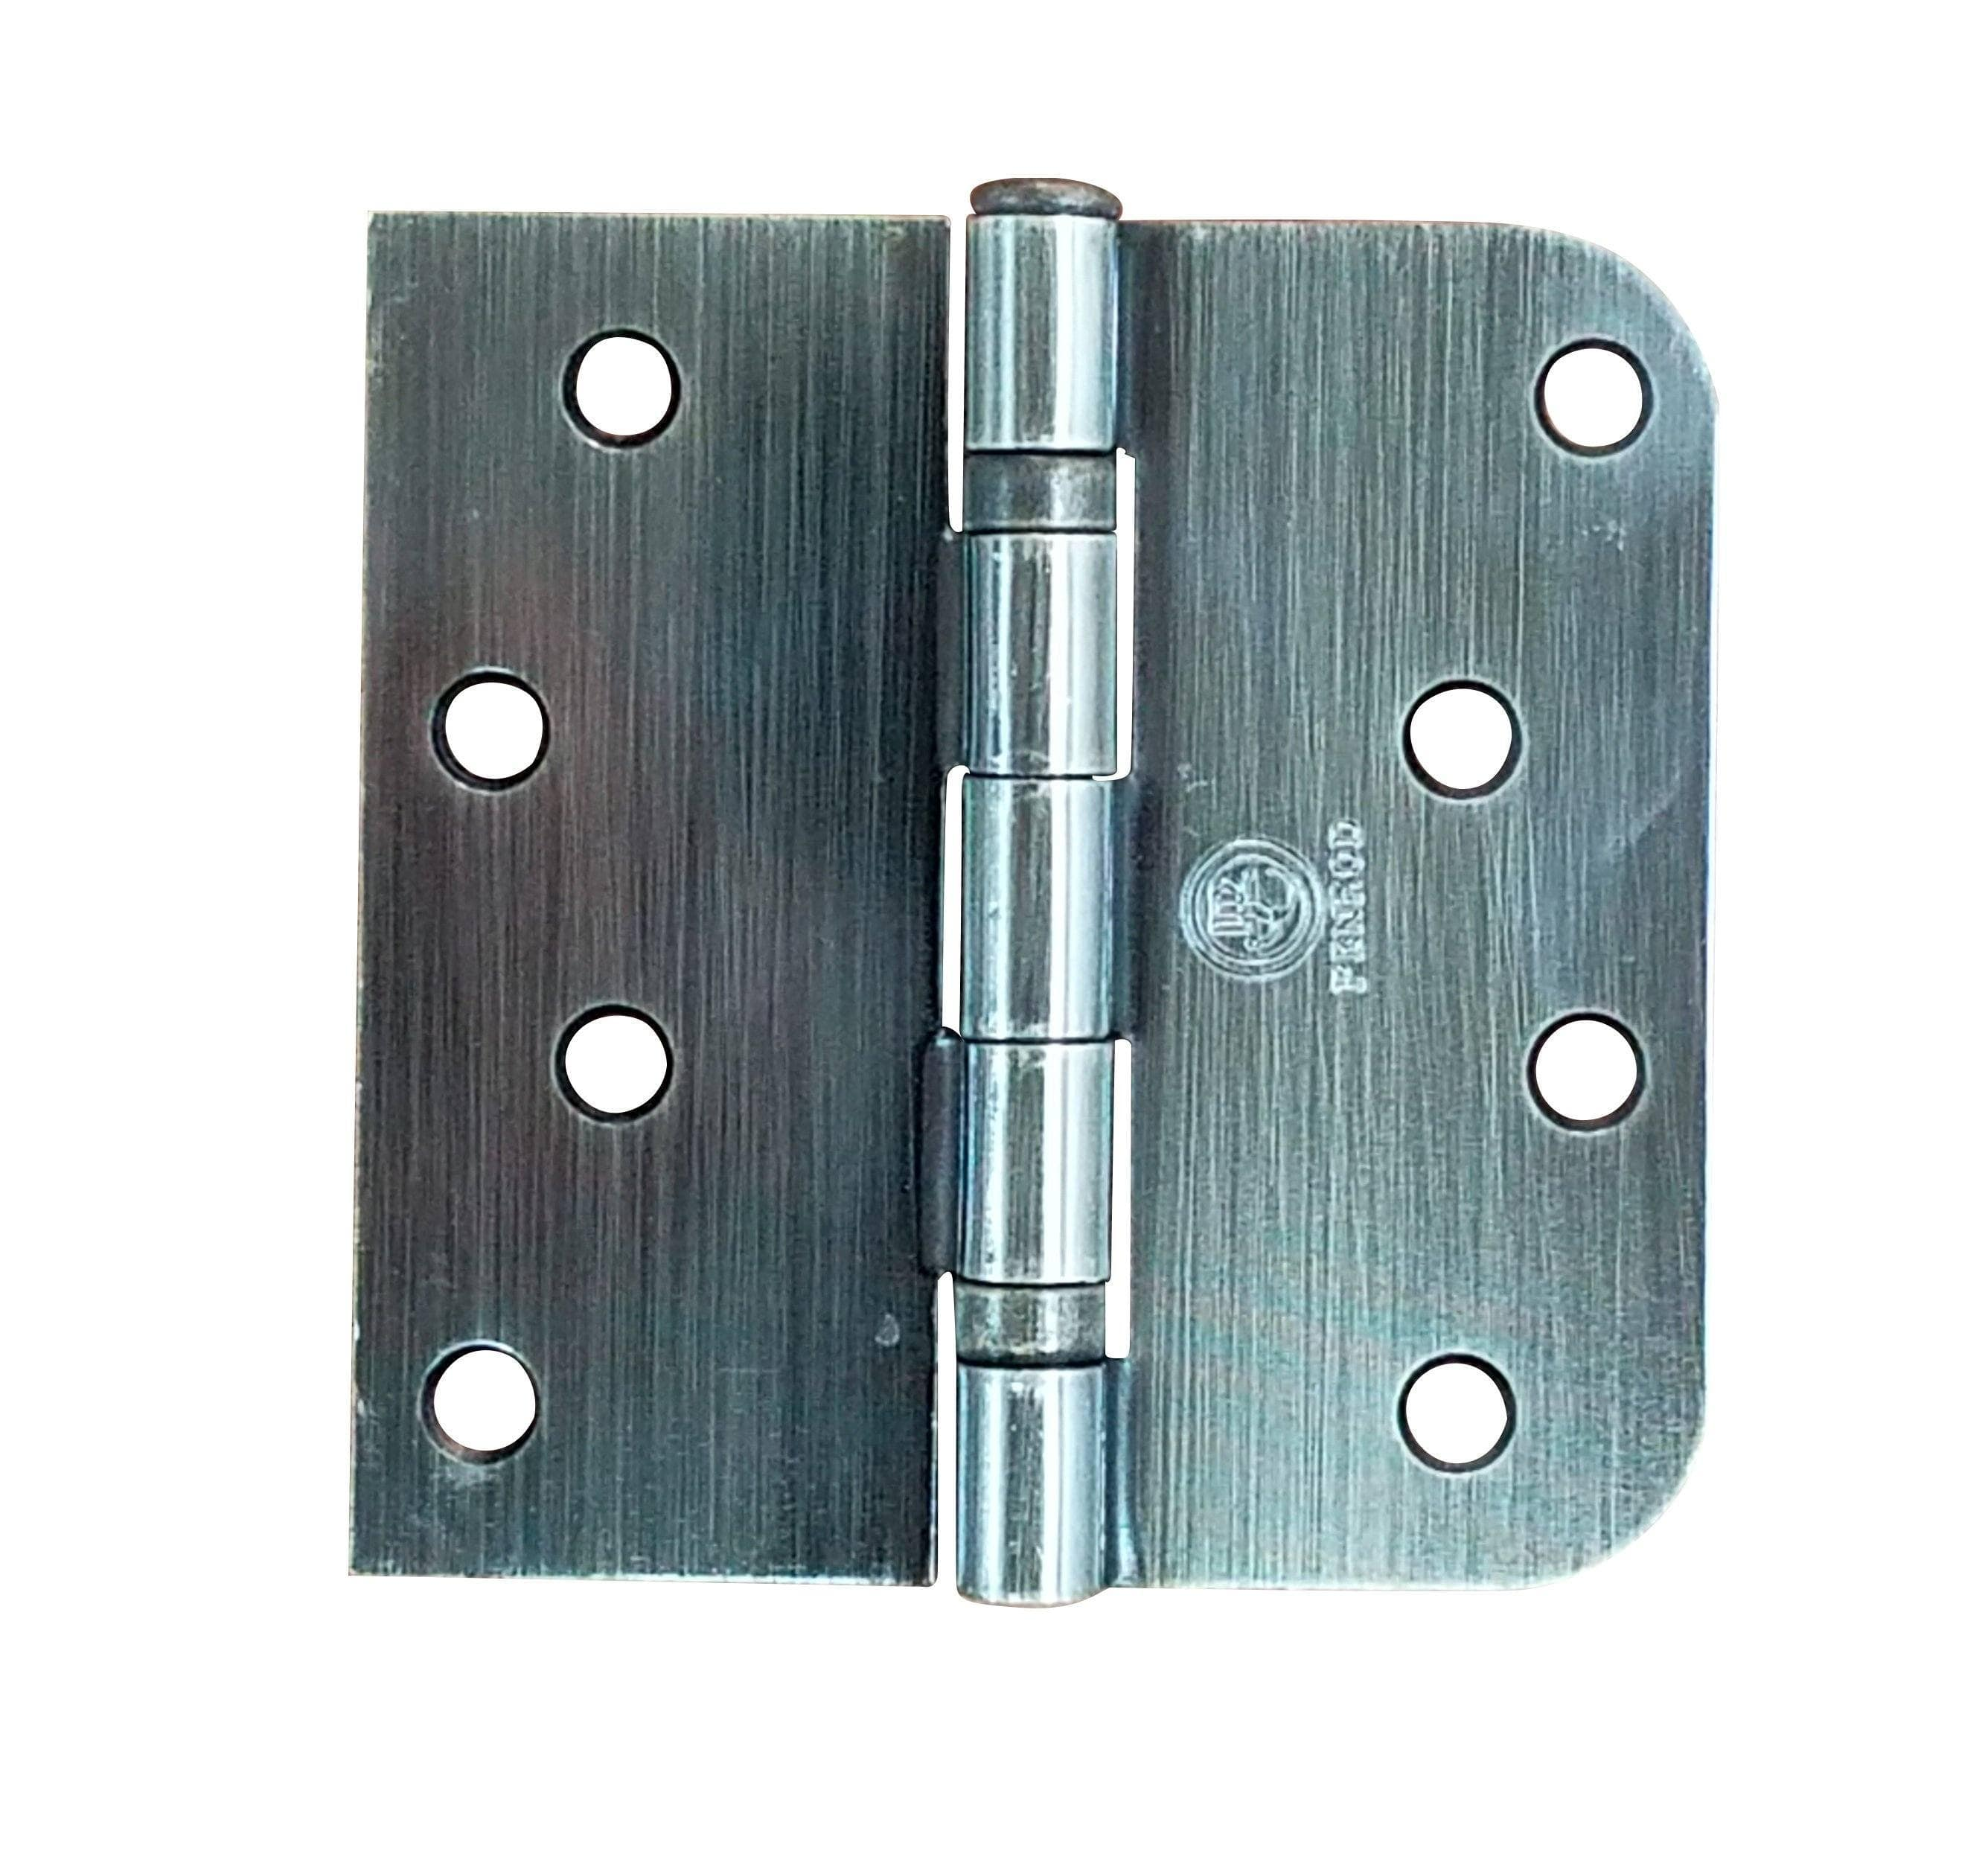 "5/8"" X Square Corner Hinges - 4"" X 4"" Ball Bearing Hinge Square Corner With 5/8"" Radius Corner Antique Brass Finish - Sold As Pairs"